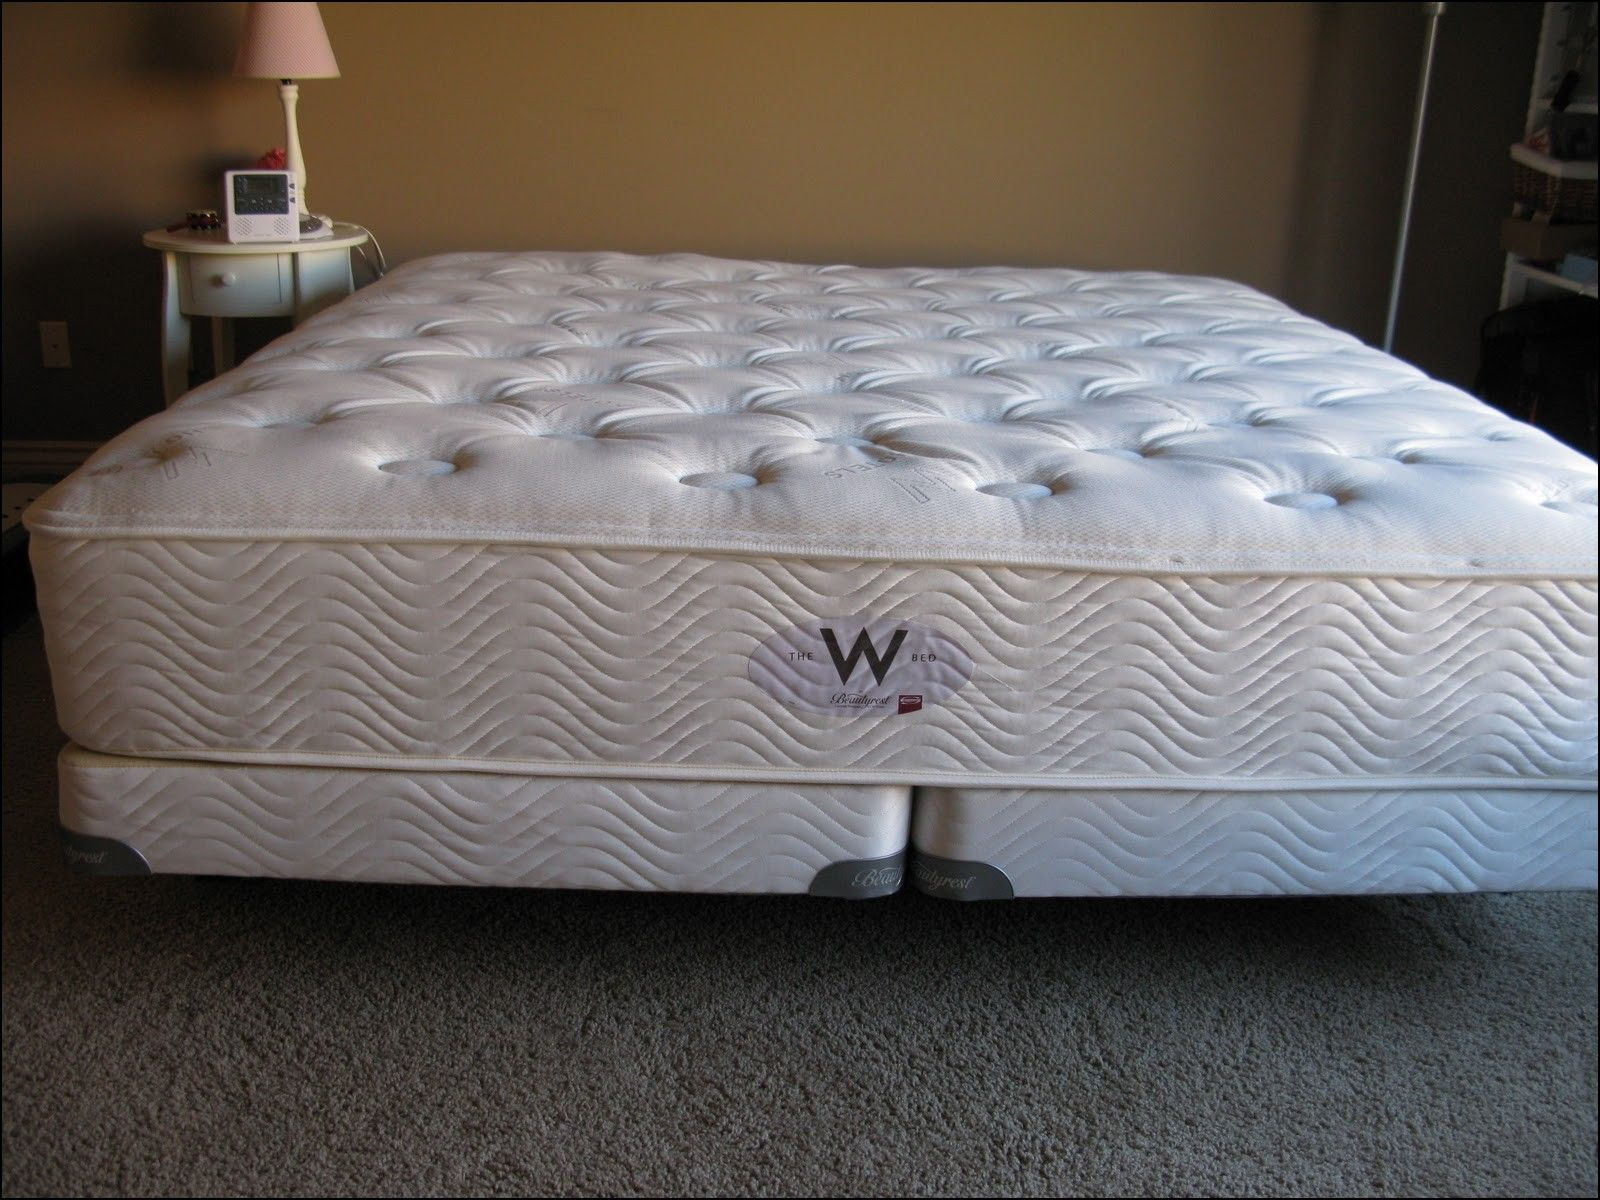 Simmons W Hotel Mattress